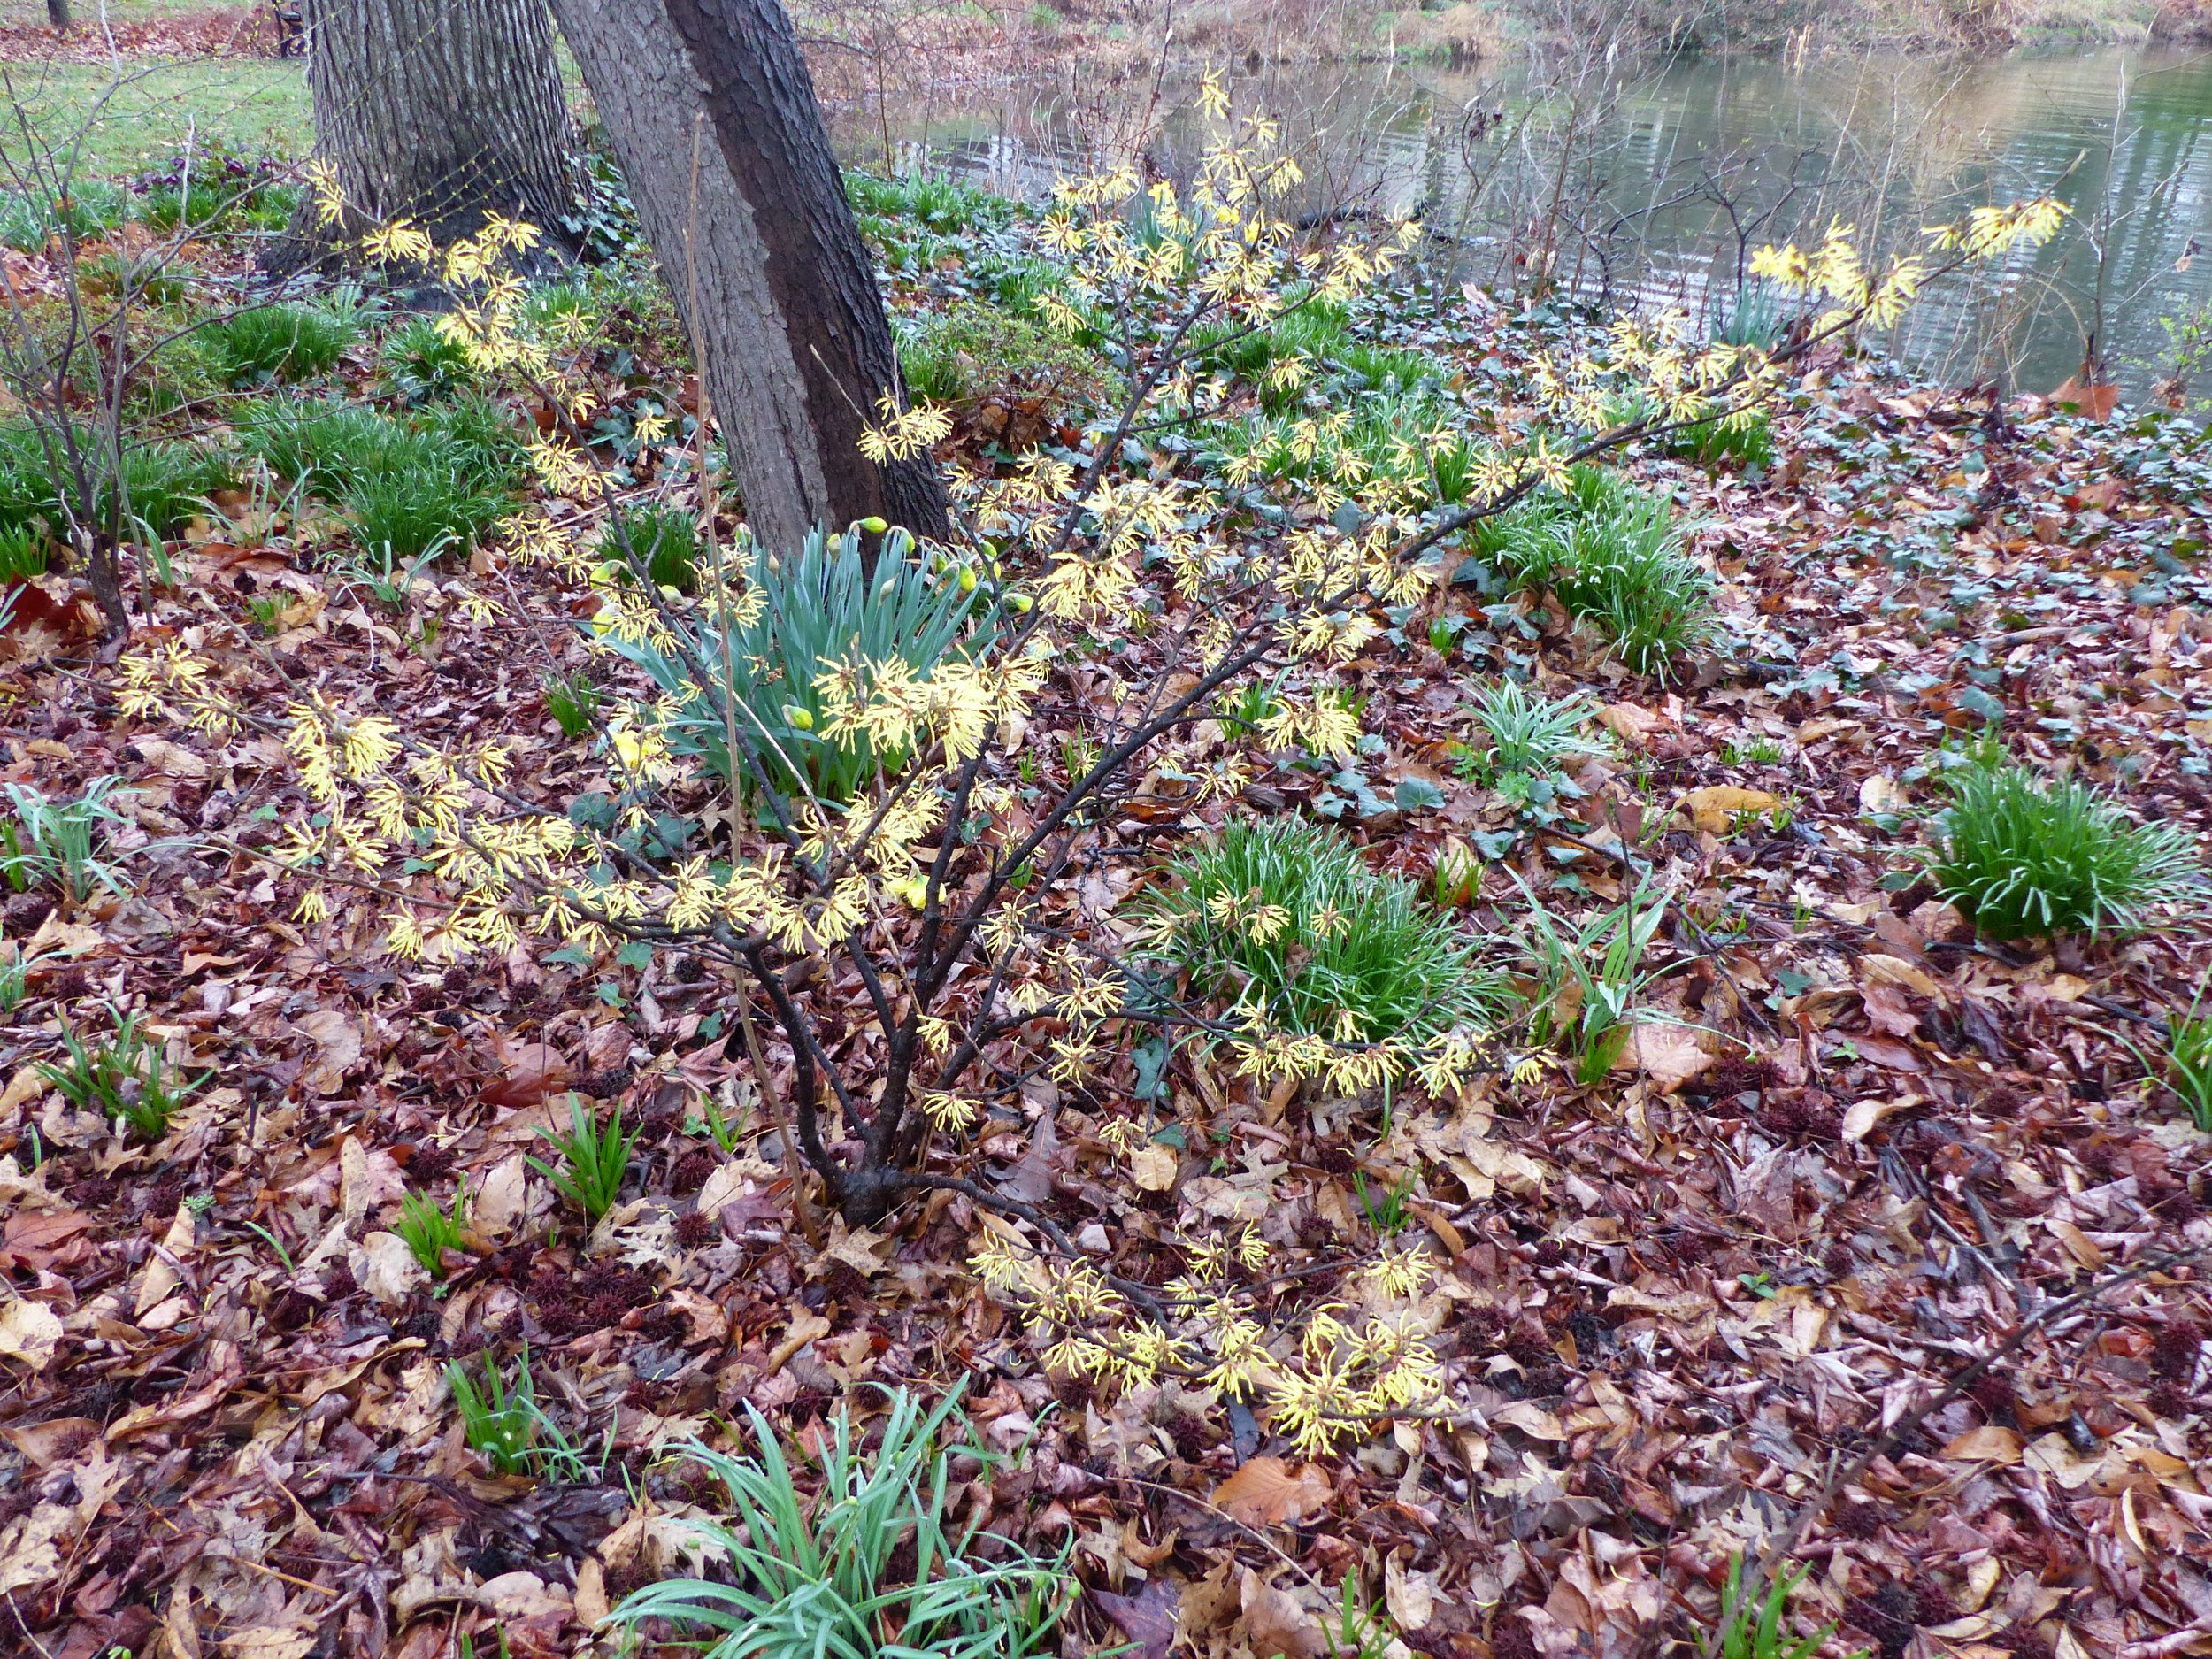 Witch hazel opens its fragrant, cinnamon scented flowers